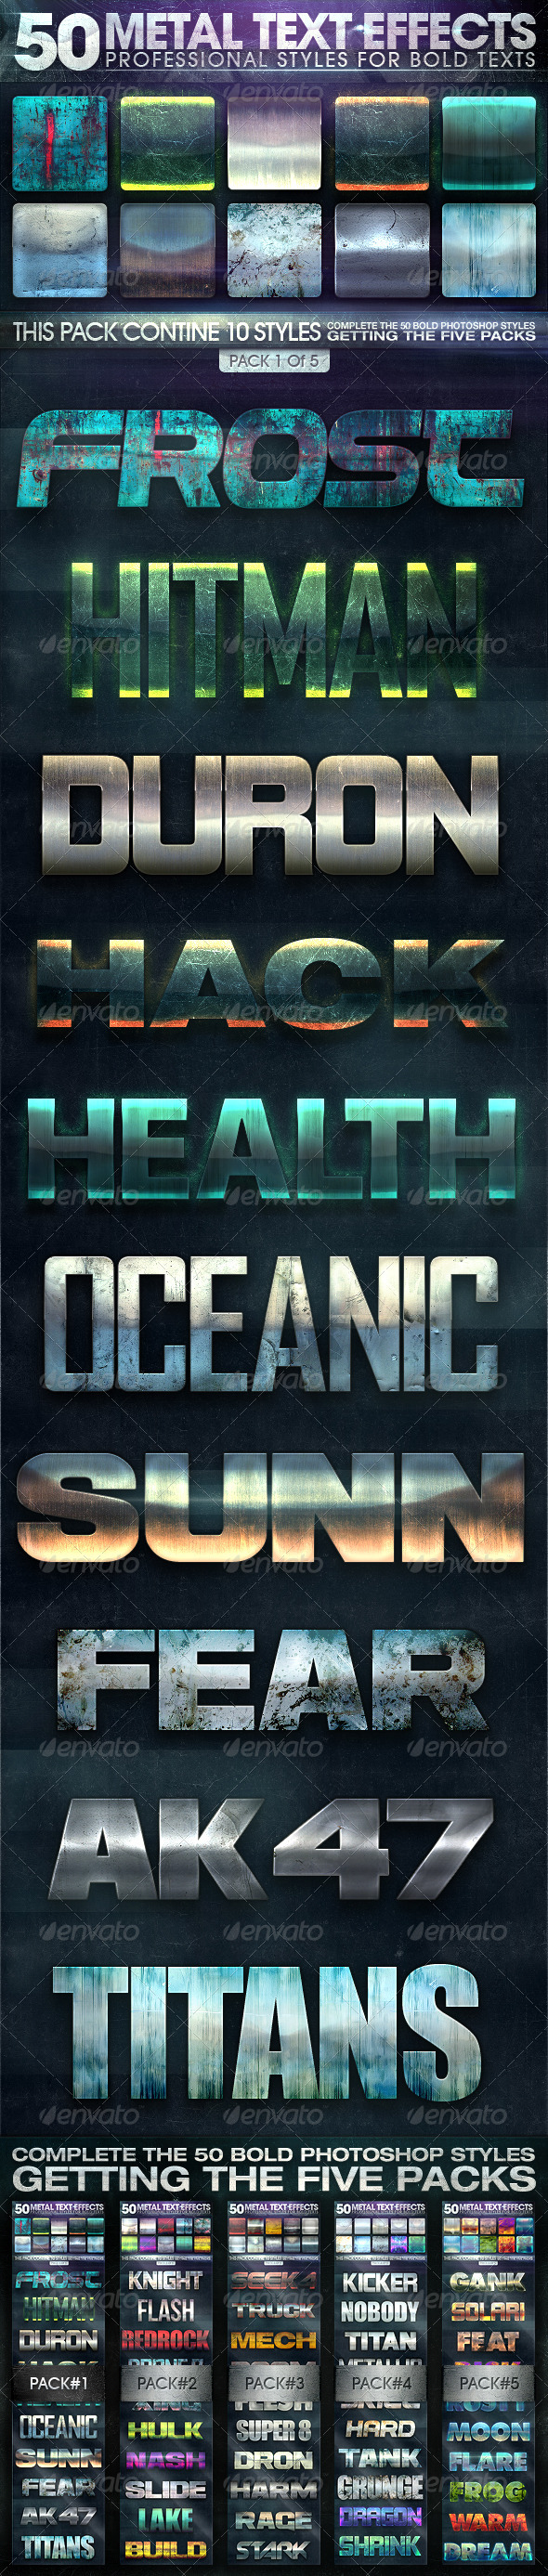 GraphicRiver 50 Metal Text Effects 1 of 5 8344089